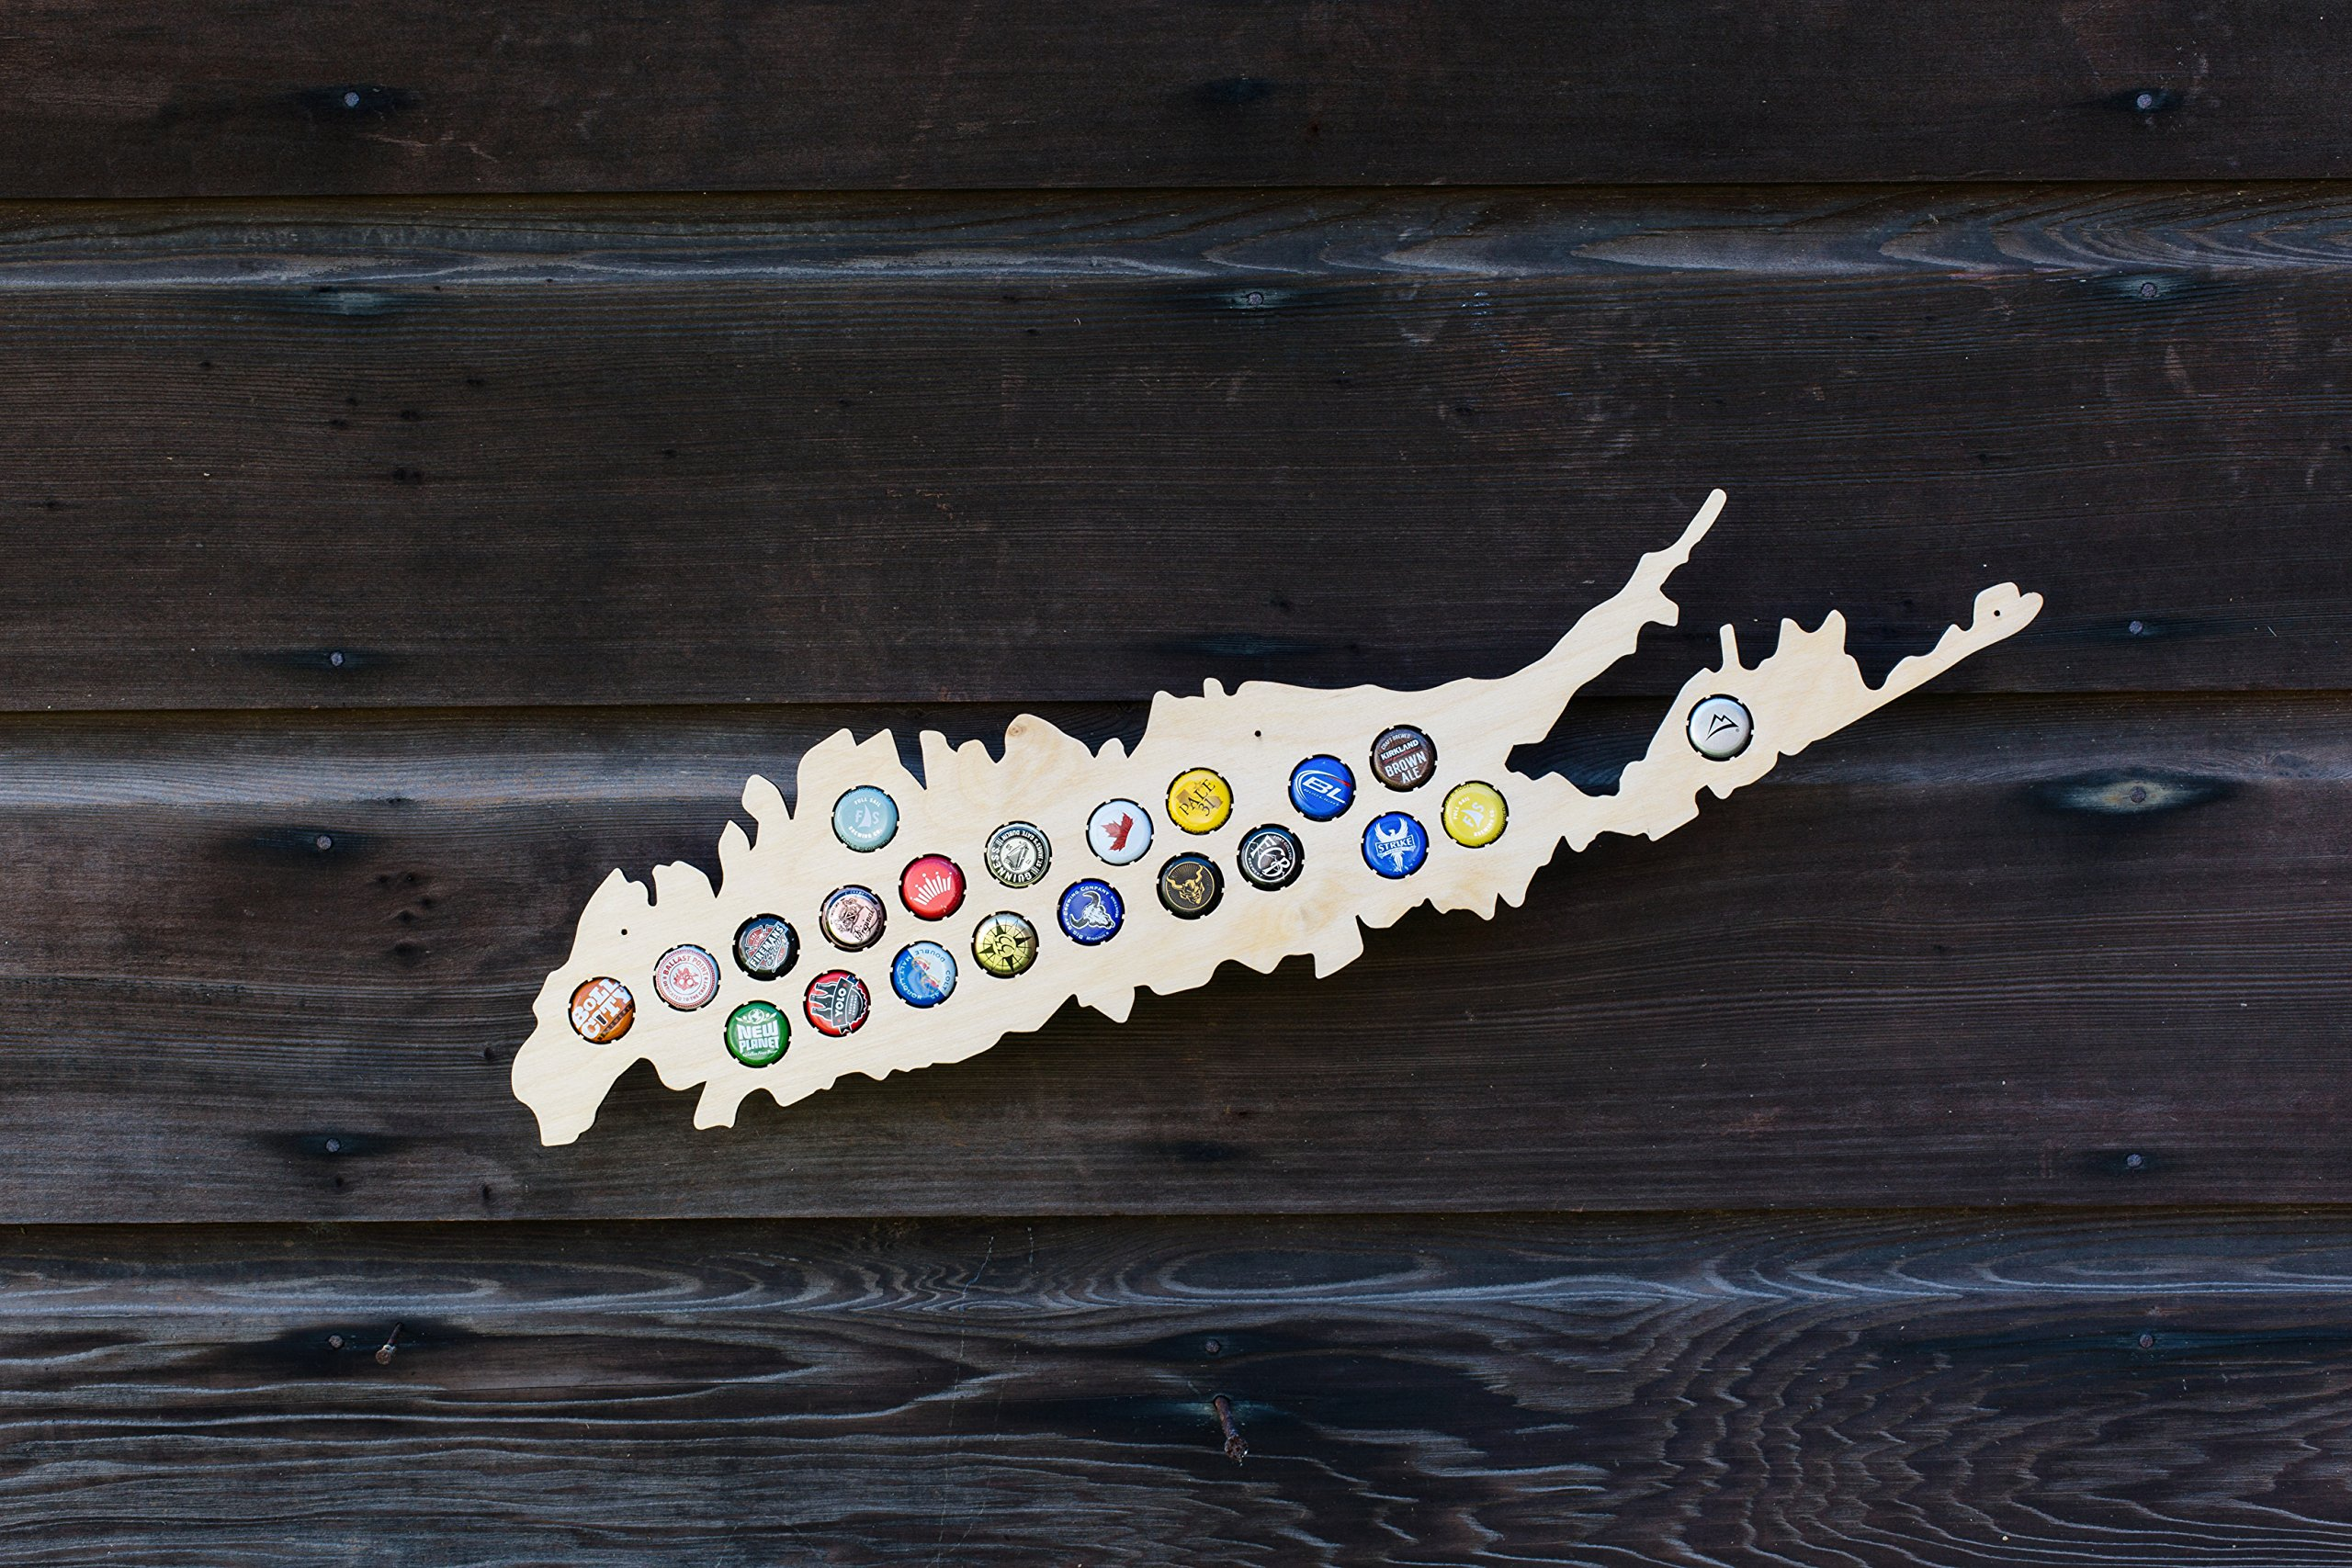 Long Island Beer Cap Map - Holds Craft Beer Bottle Caps - New York Neighborhoods (natural_wood) by Beer Cap Country (Image #2)